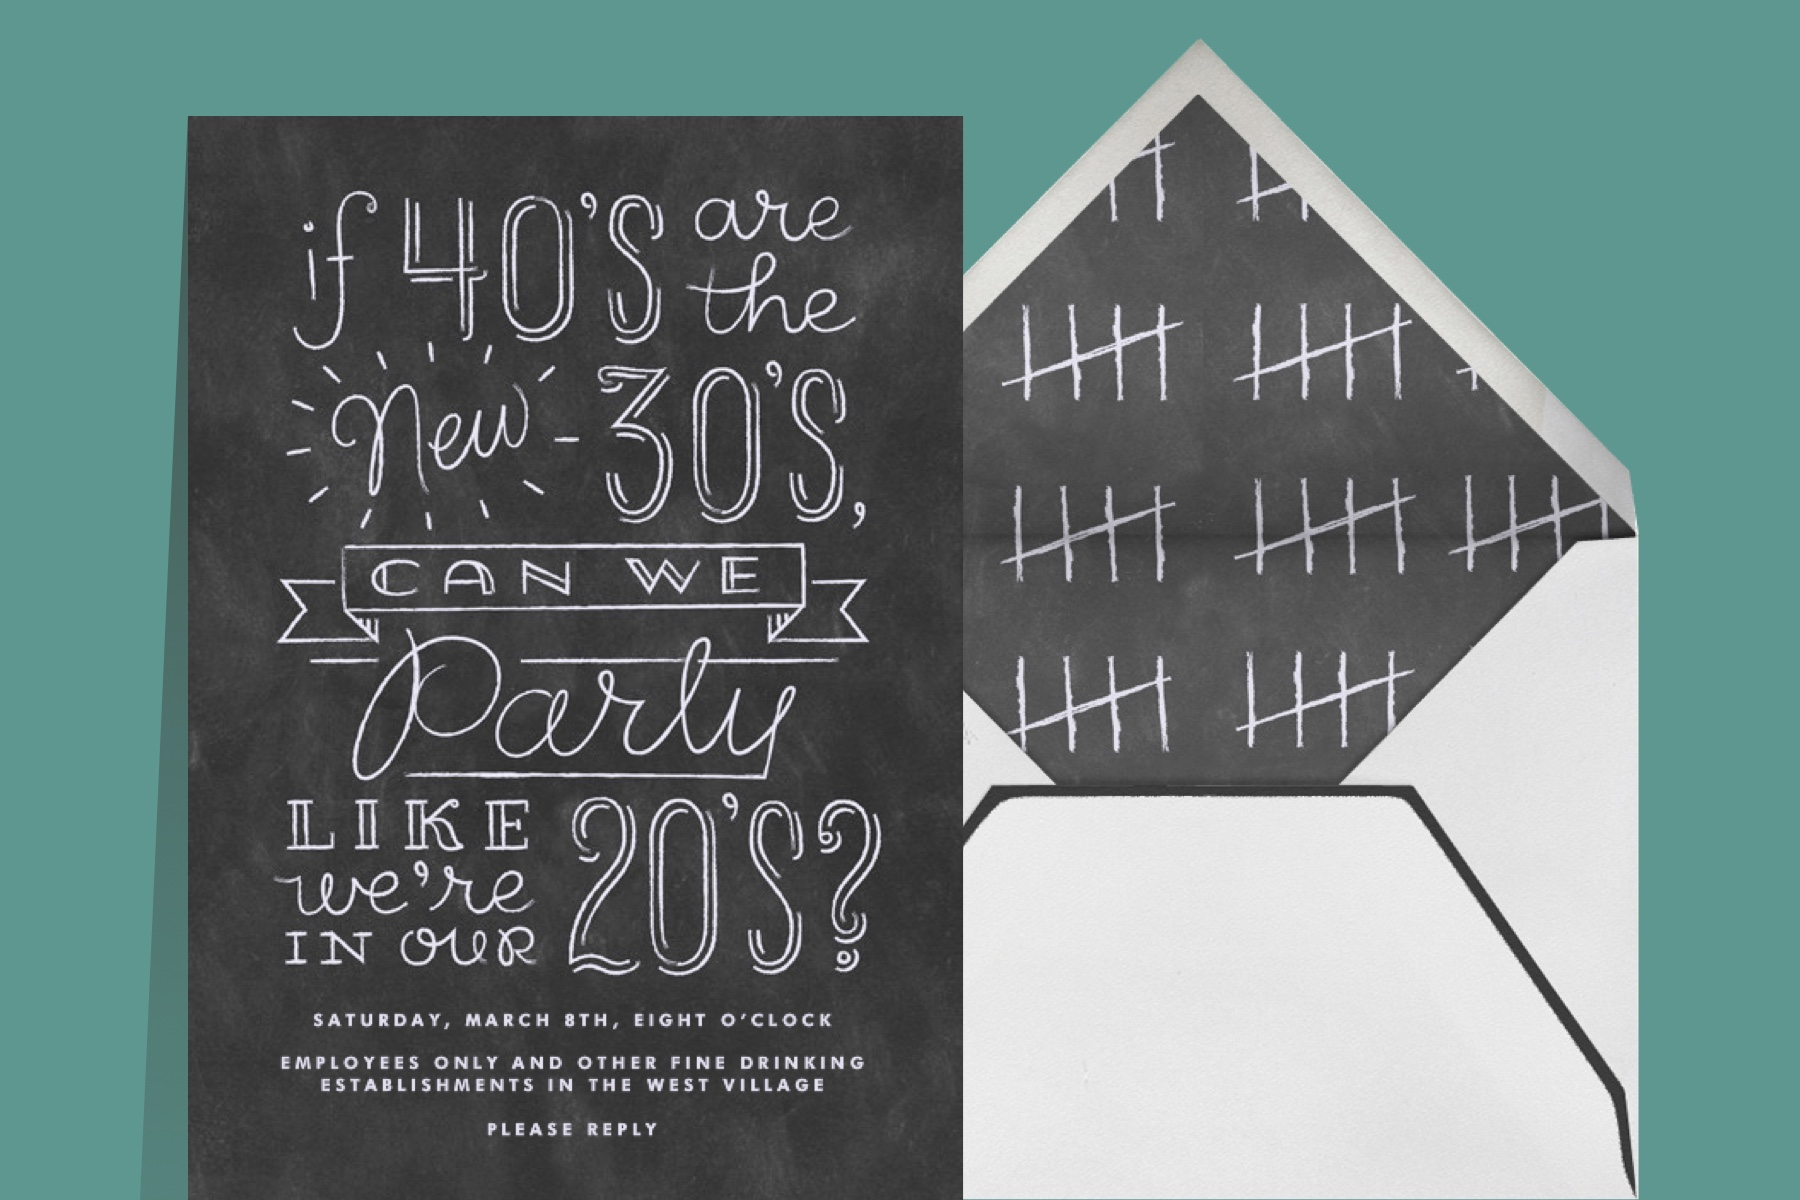 """""""Like We're in Our 20s"""" invitation by Derek Blasberg for Paperless Post, featuring playful text reading """"If 40's are the new 30's can we party like we're in our 20's?""""."""